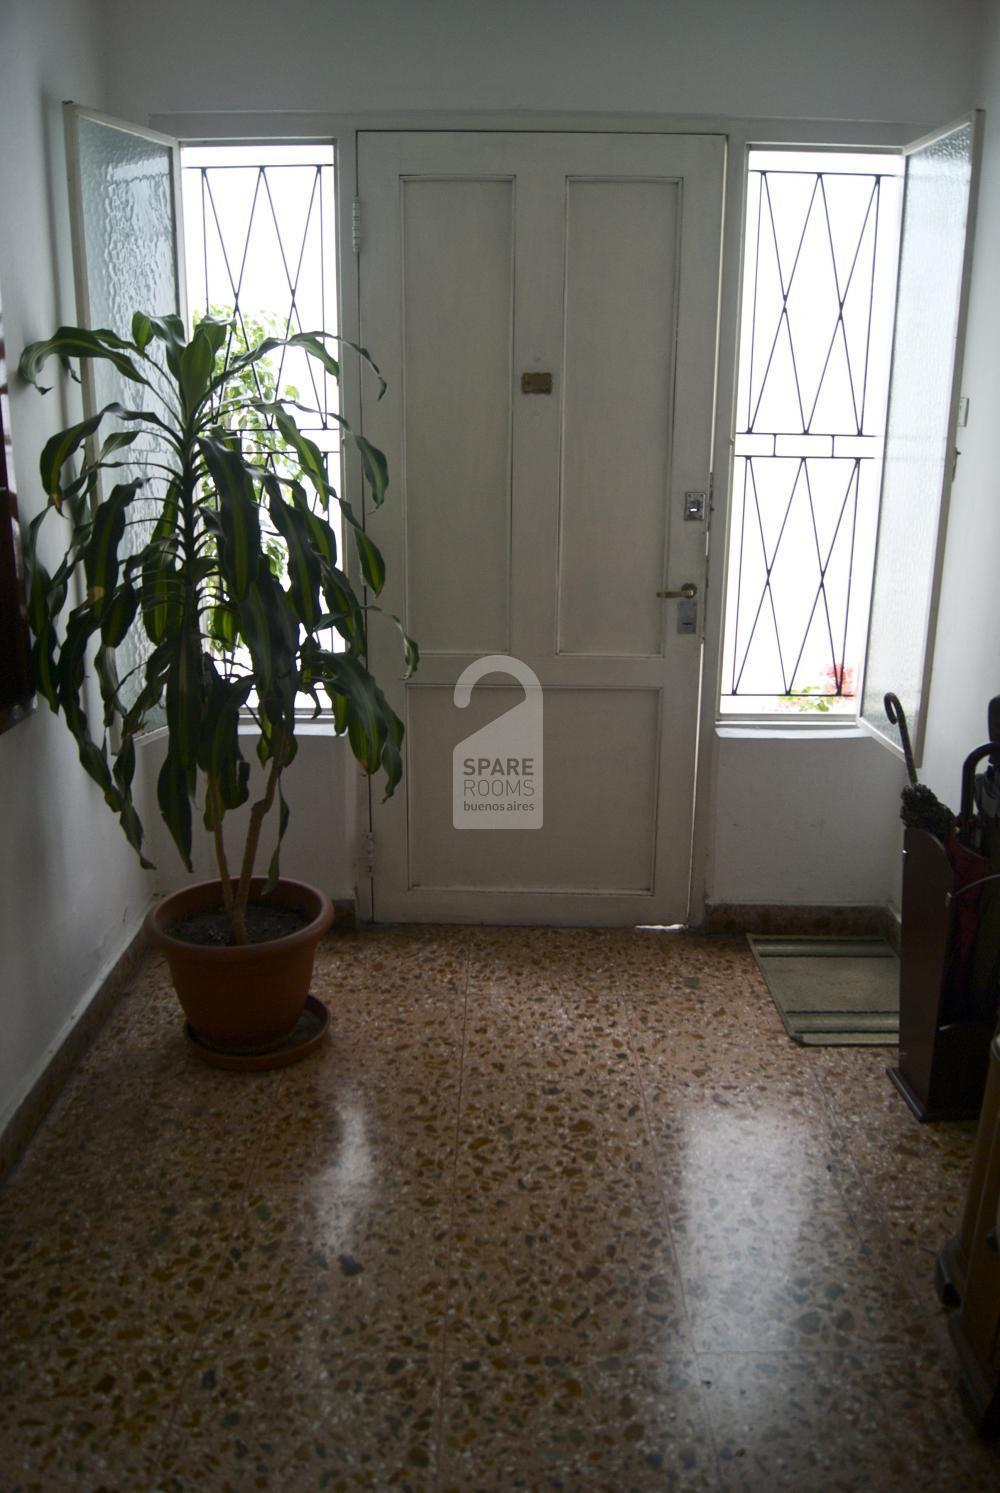 The entrance of the apartment of Palermo Soho